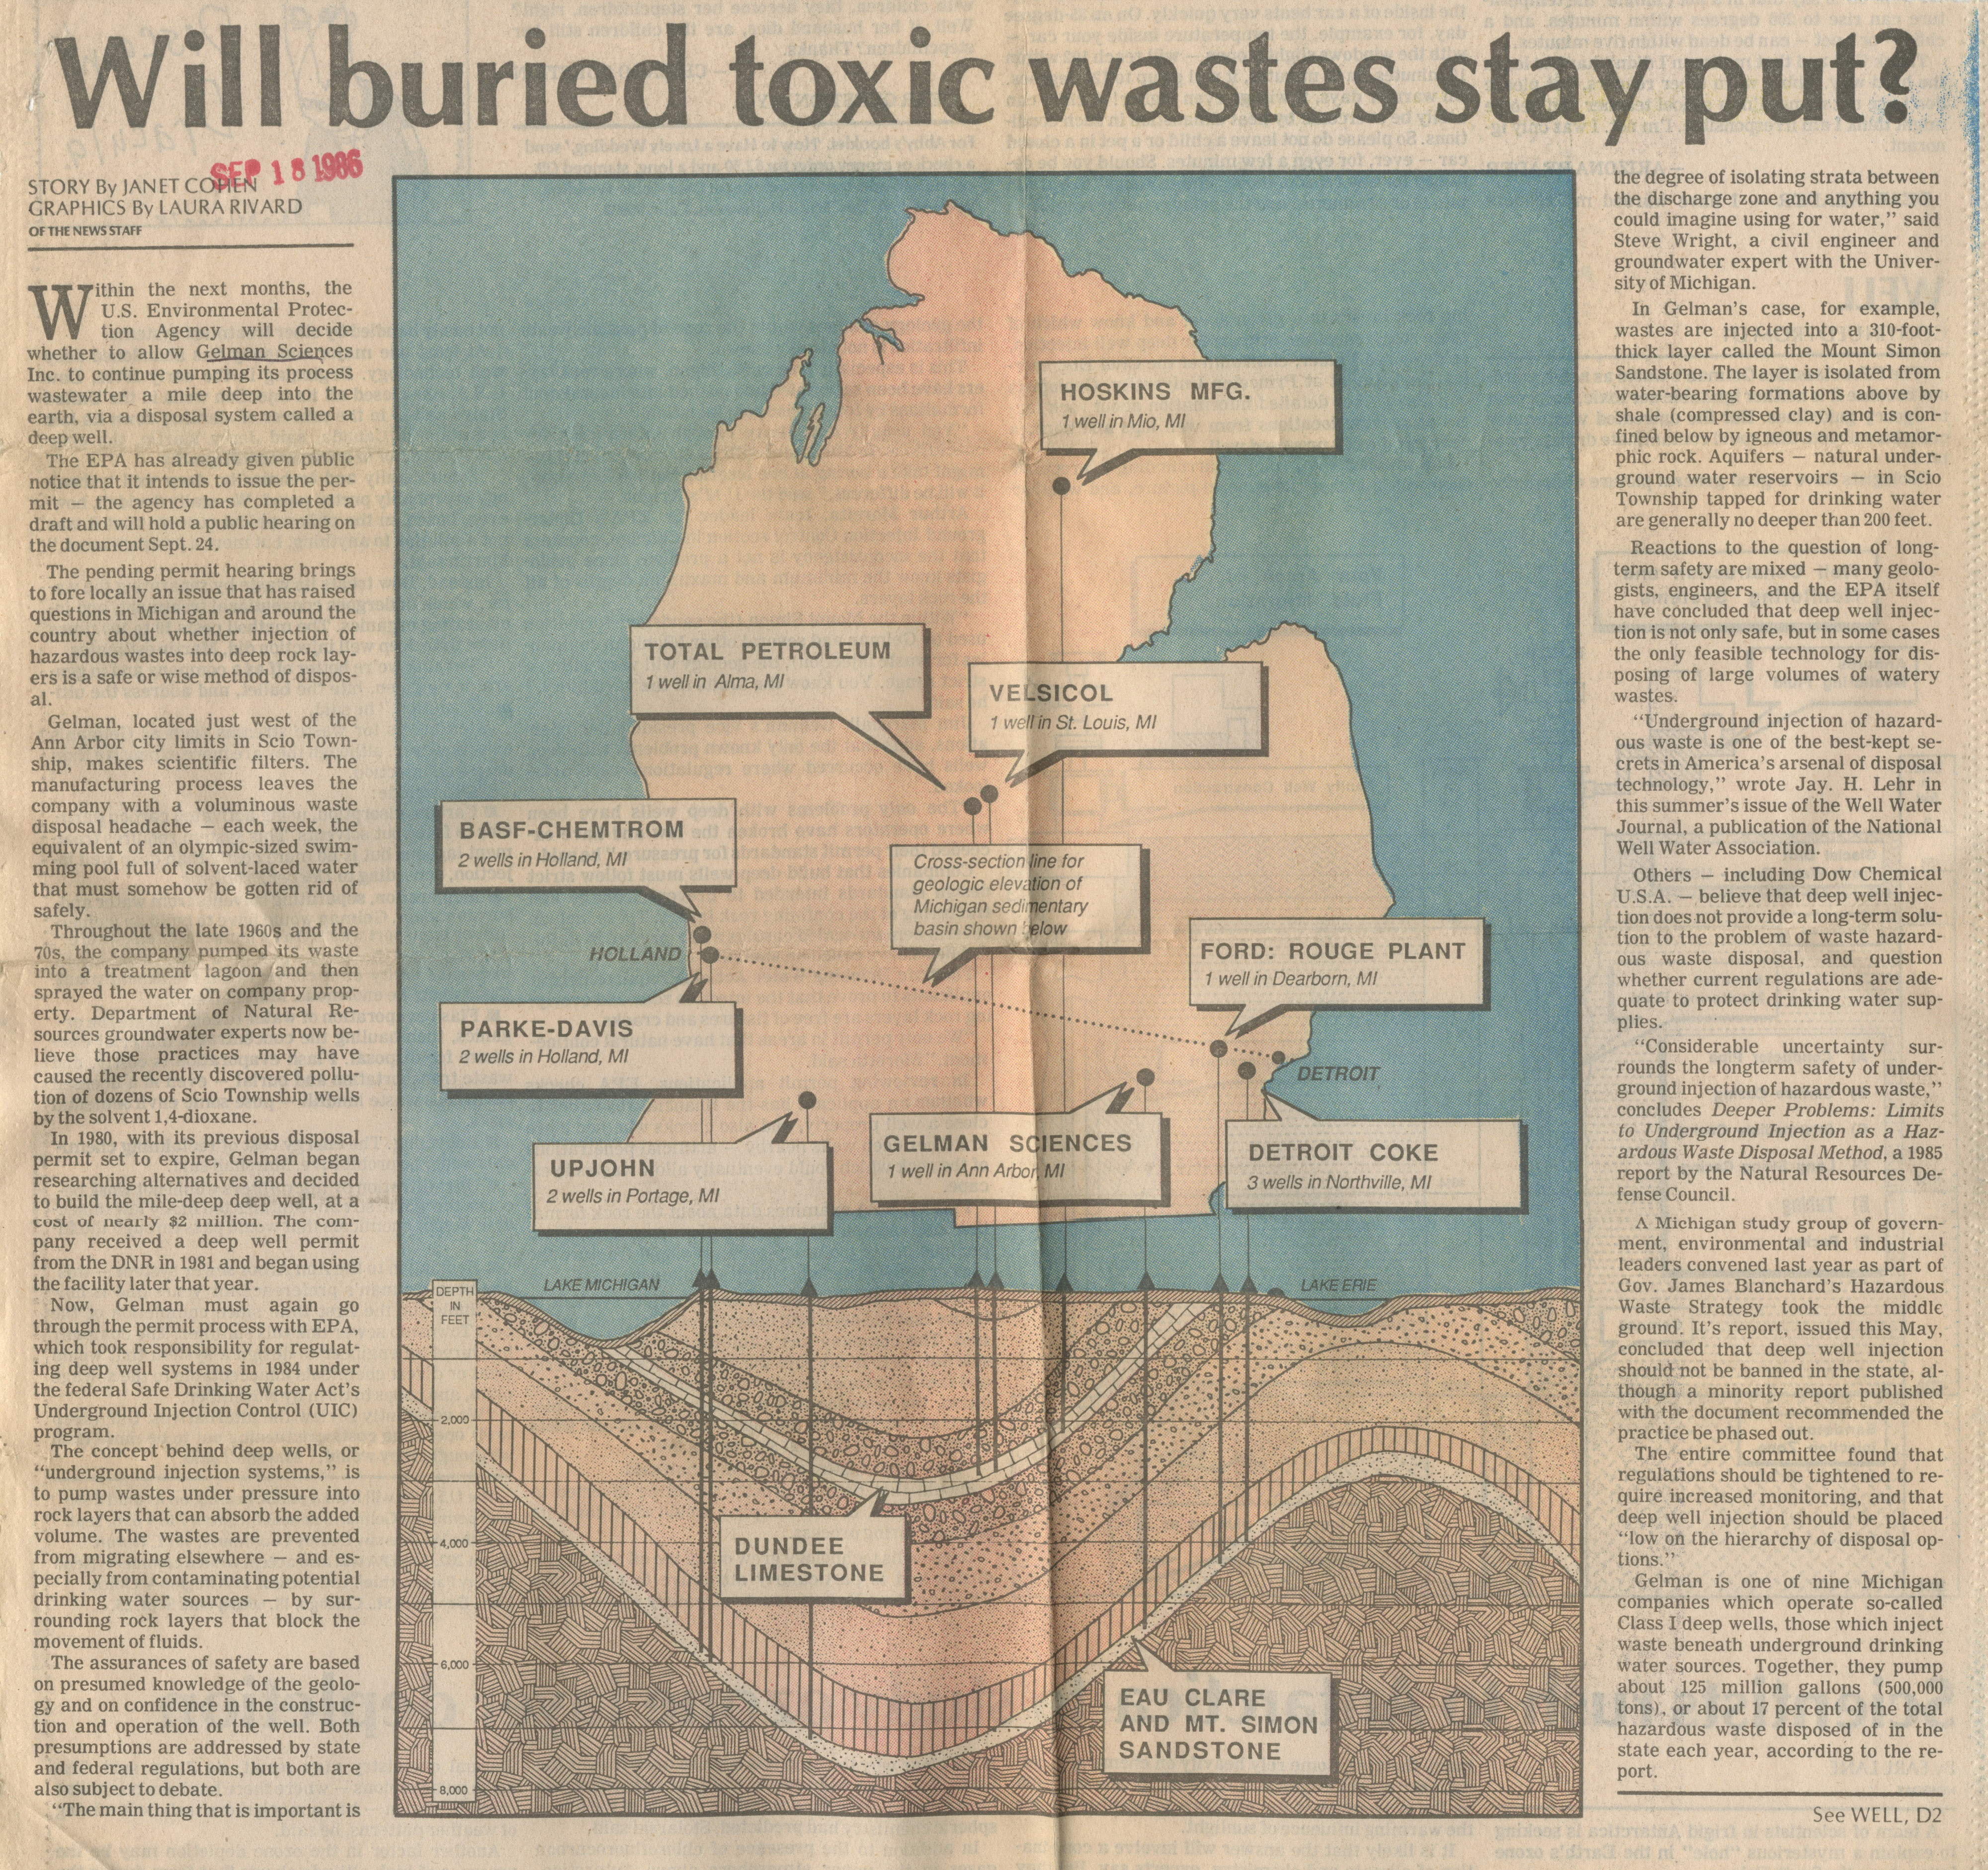 Will Buried Toxic Wastes Stay Put? image